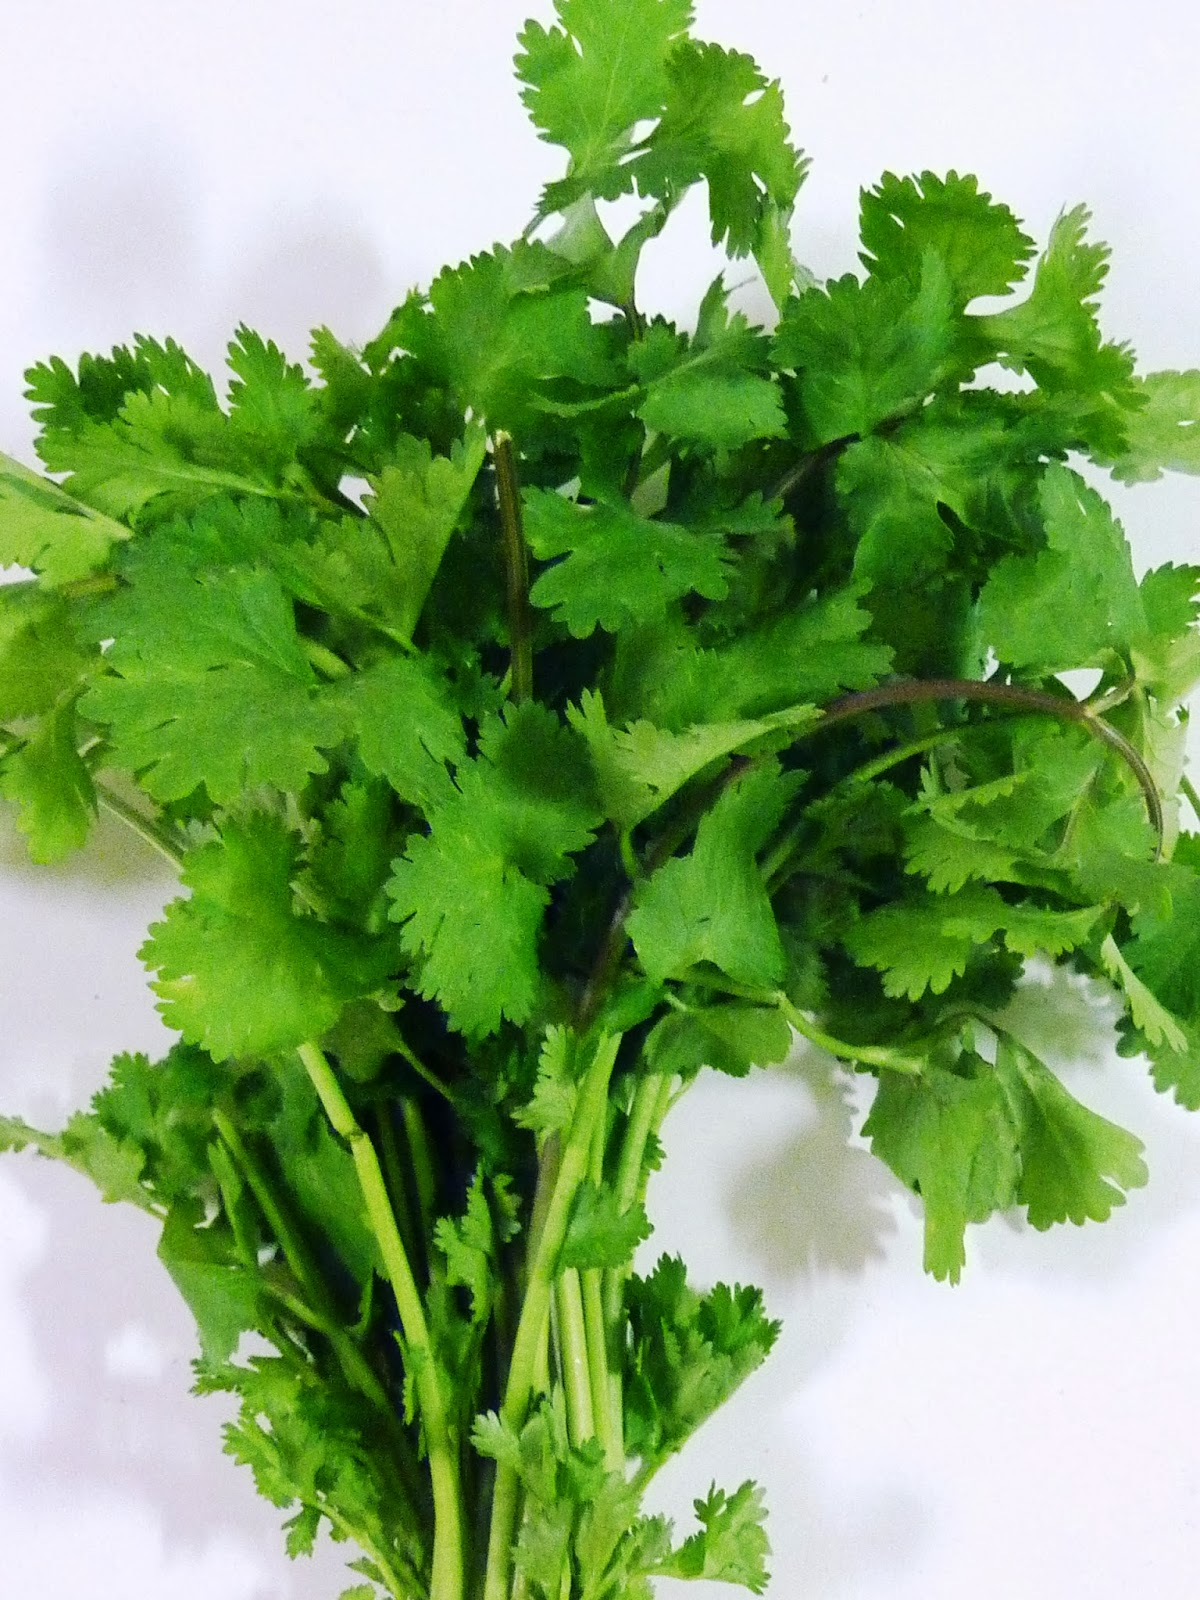 i coriander Chances are pretty good that if you have ever grown cilantro you ended up with coriander seeds at some point coriander is the fruit or seed from the cilantro plant.